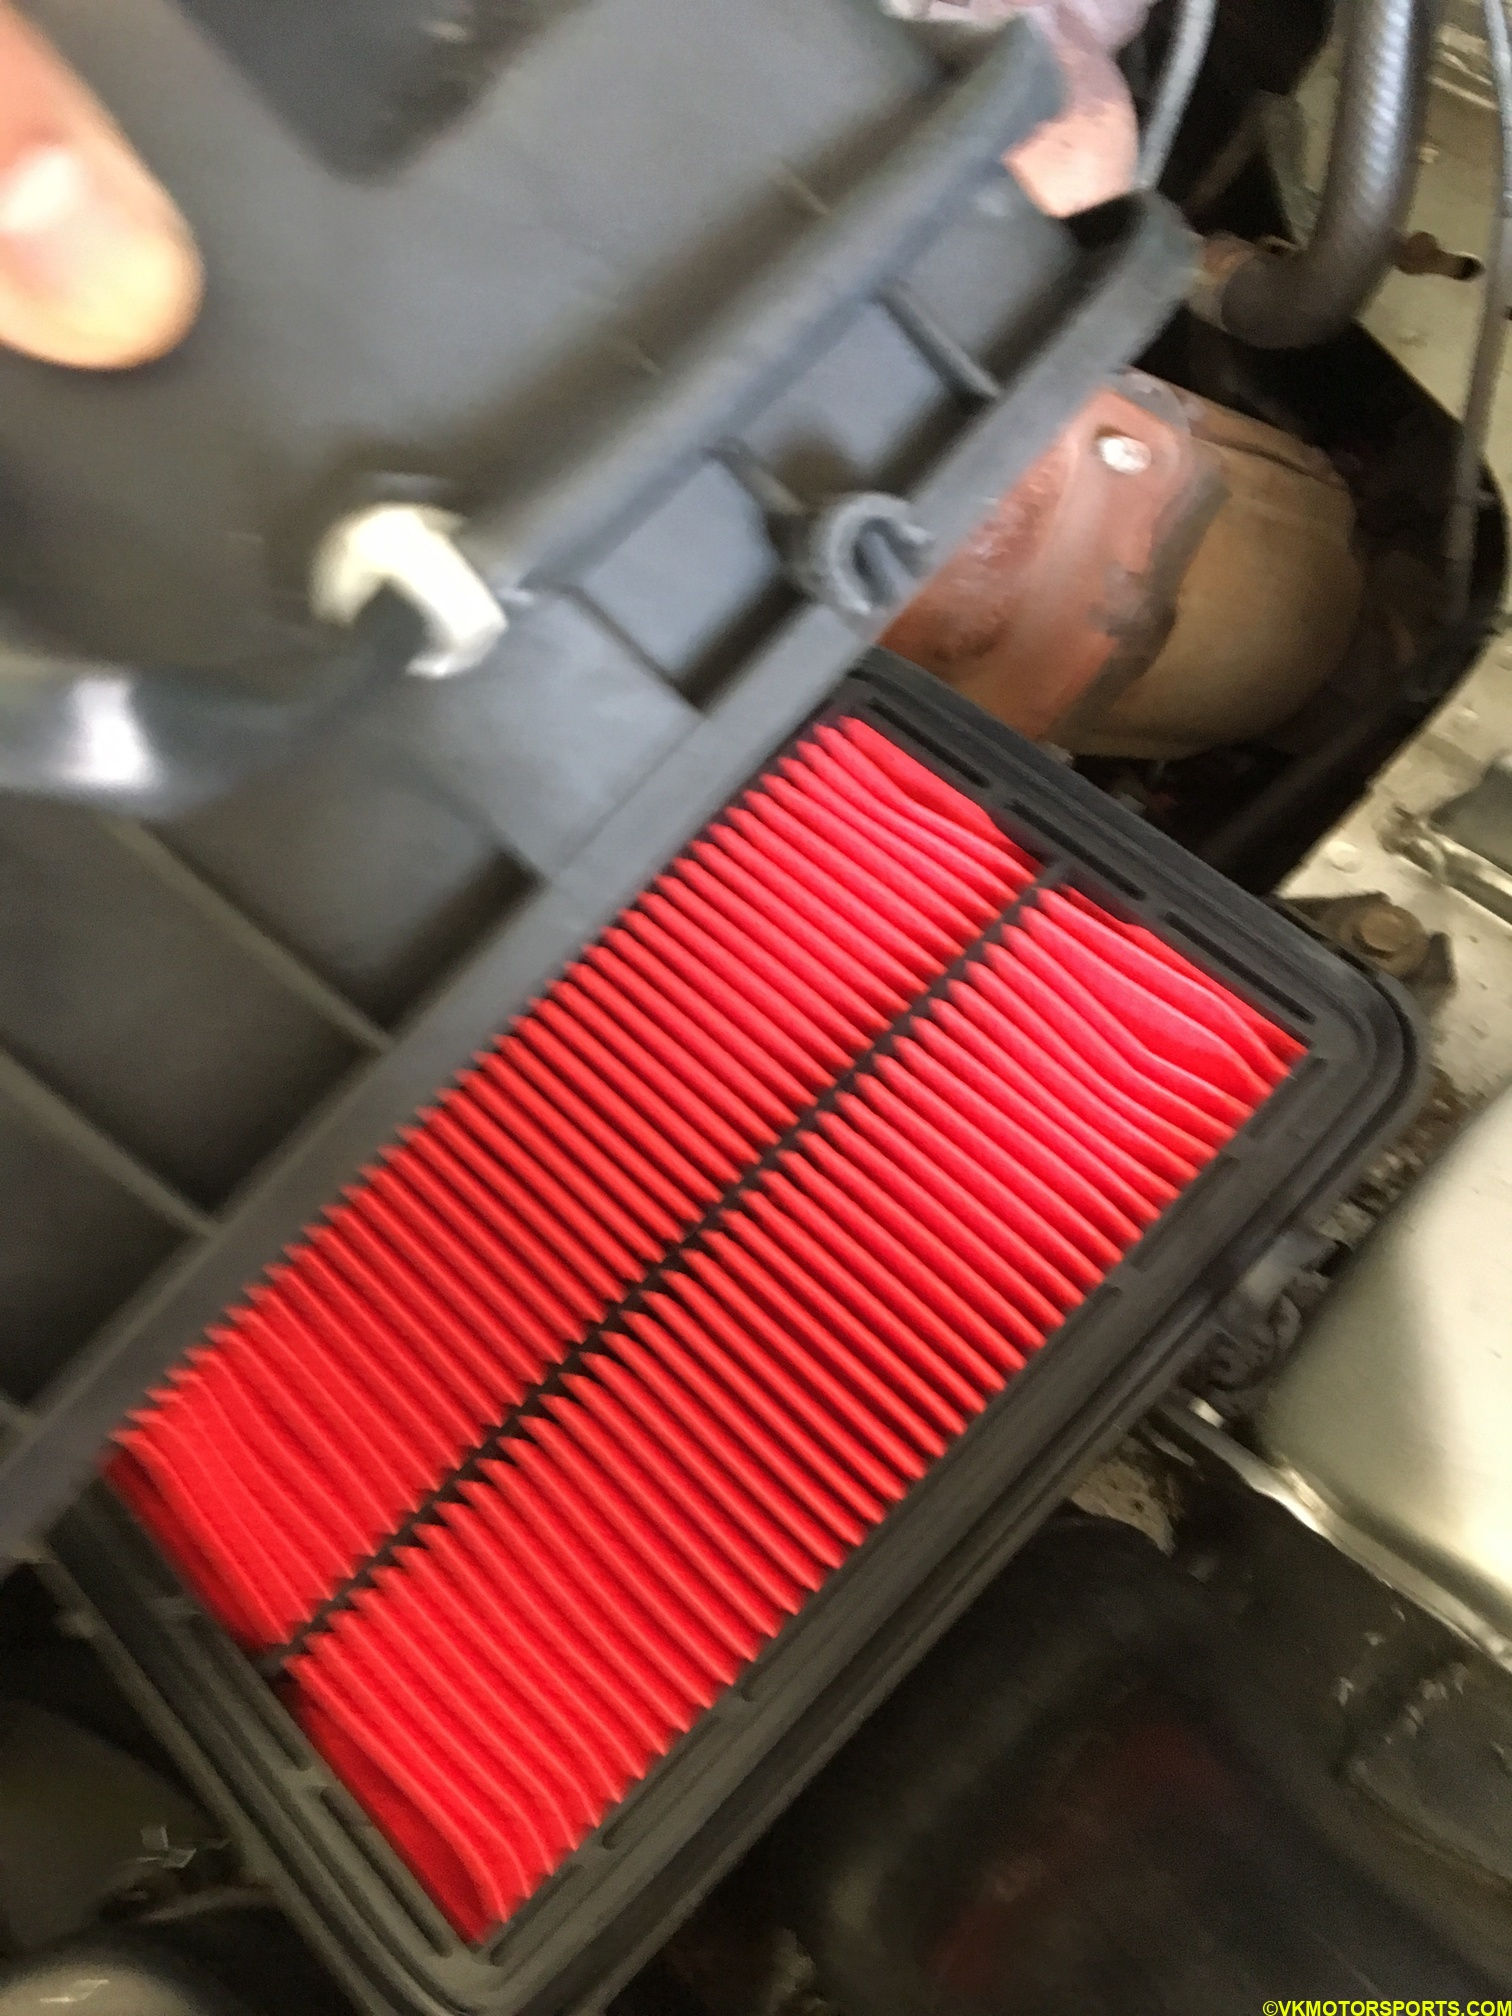 Figure 6. New Air filter installed